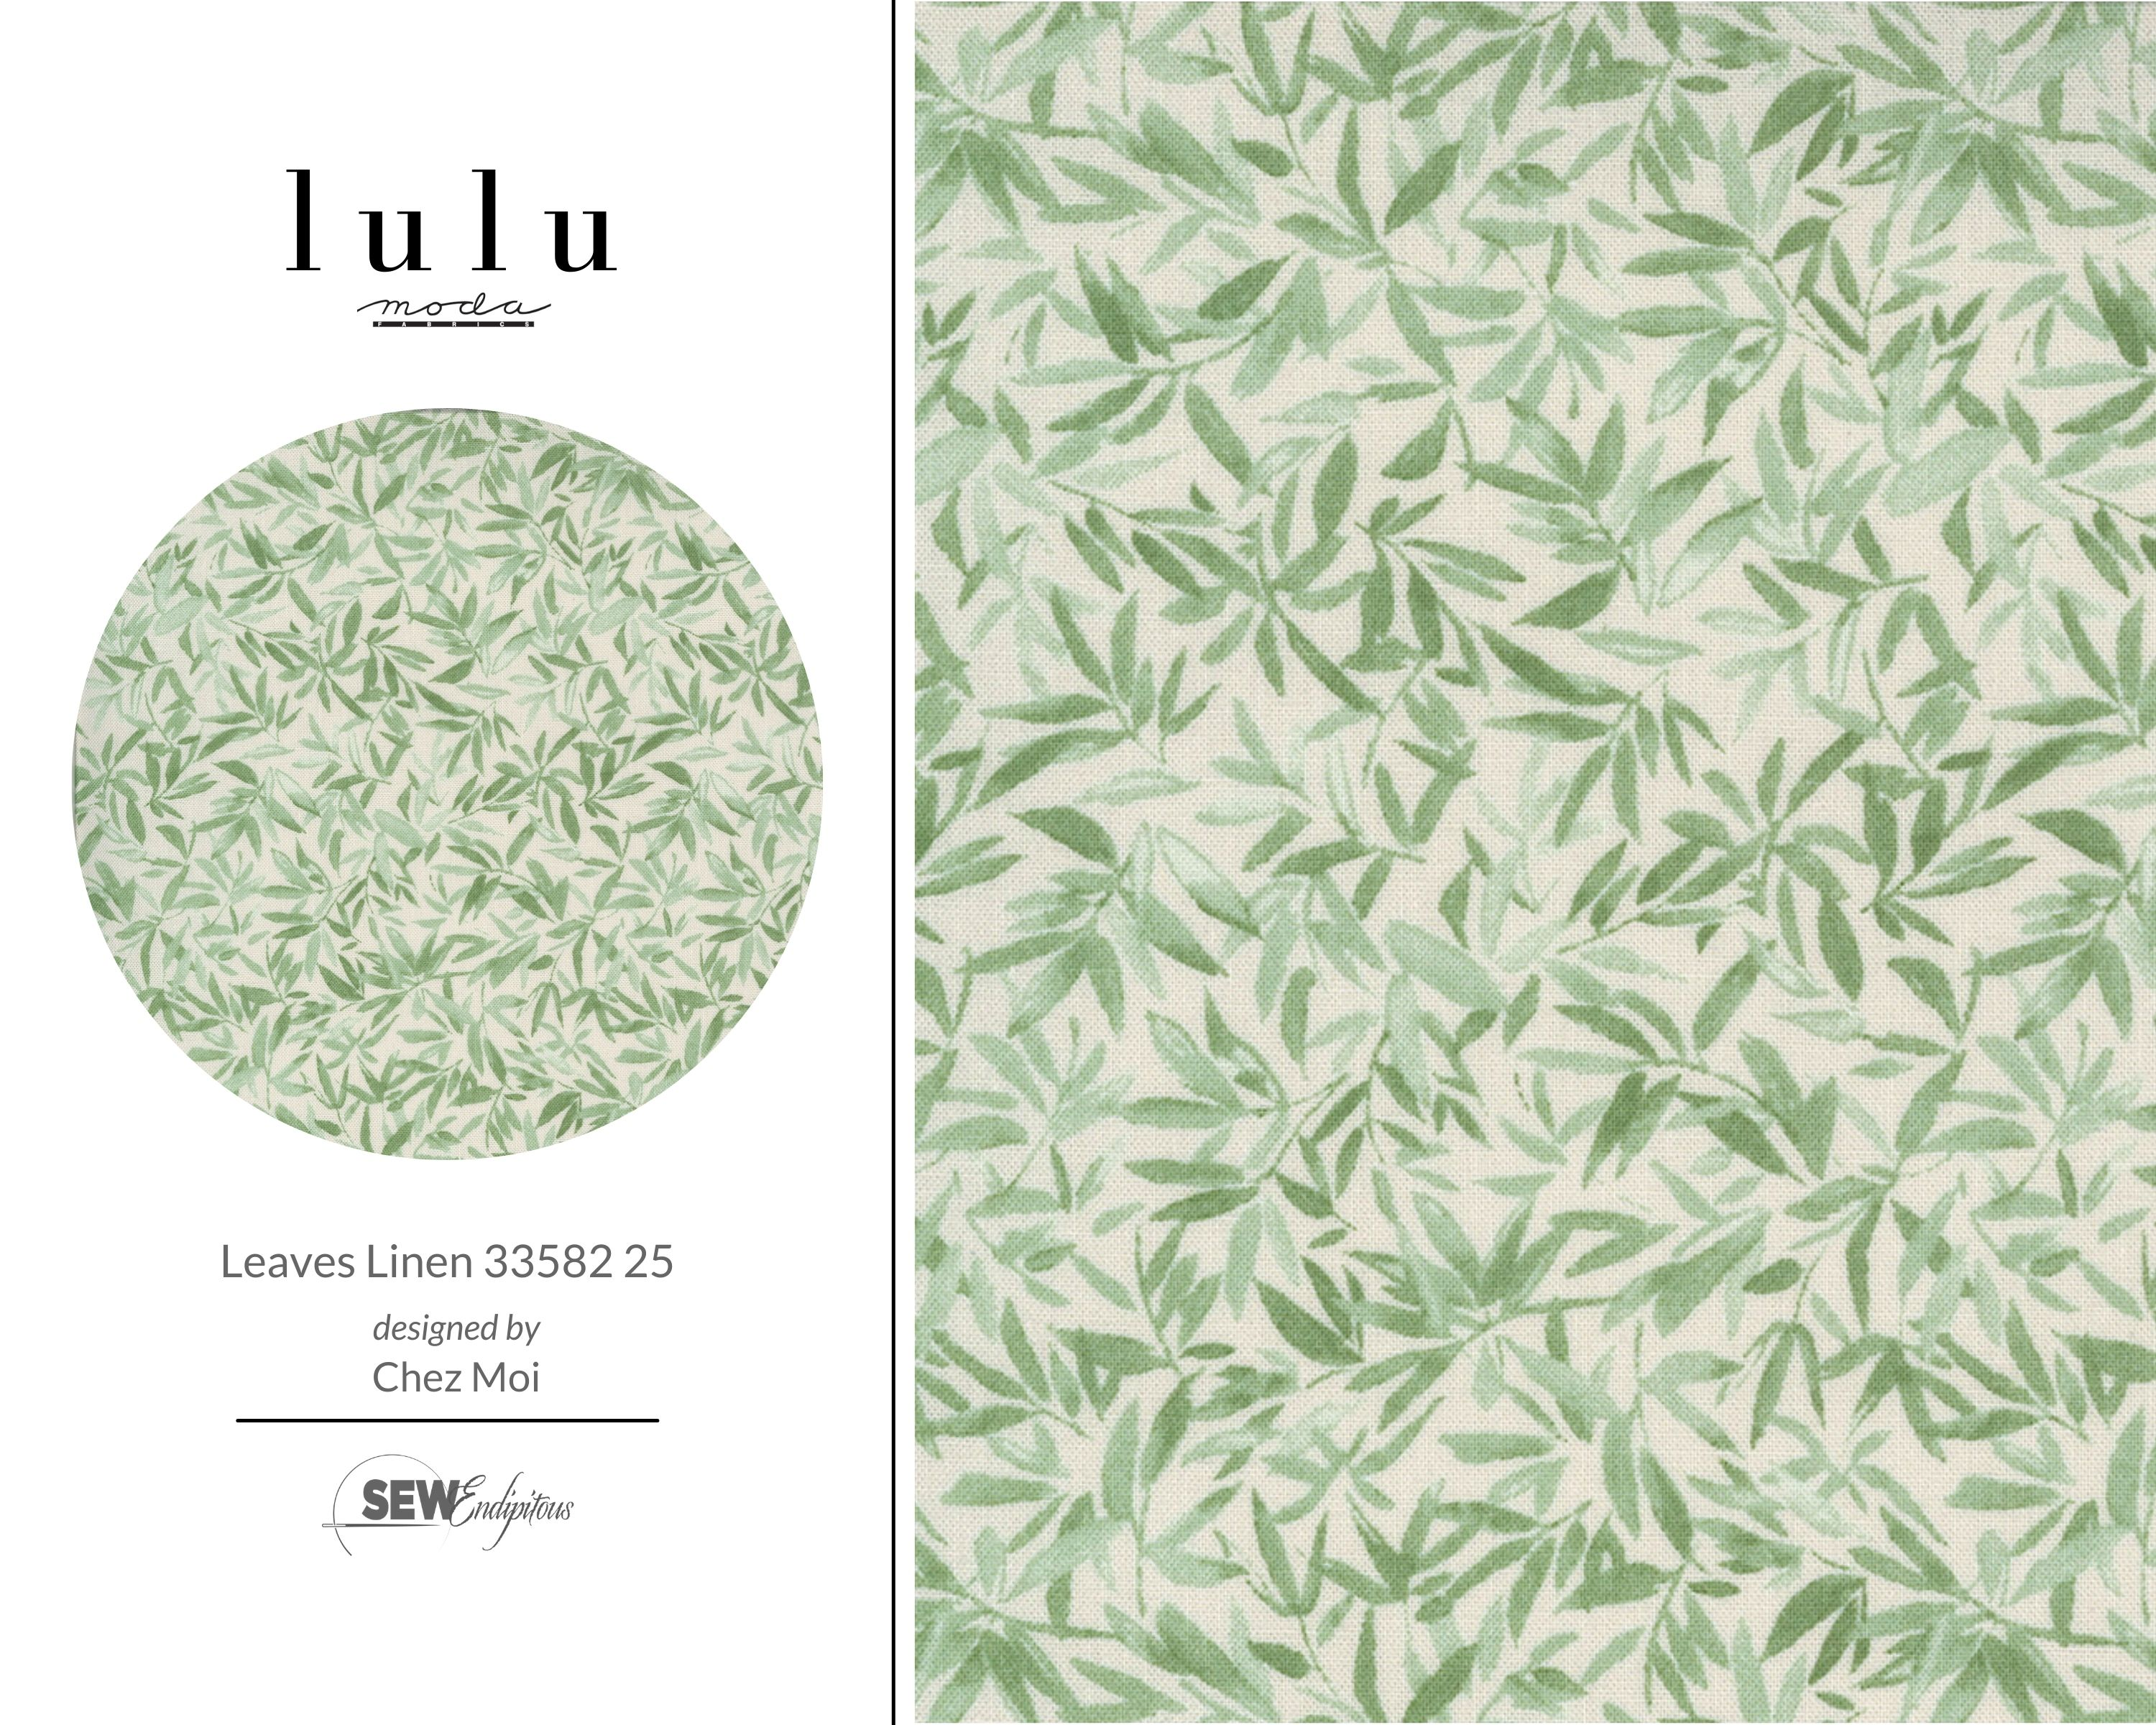 Lulu - Leaves Linen 33582 25